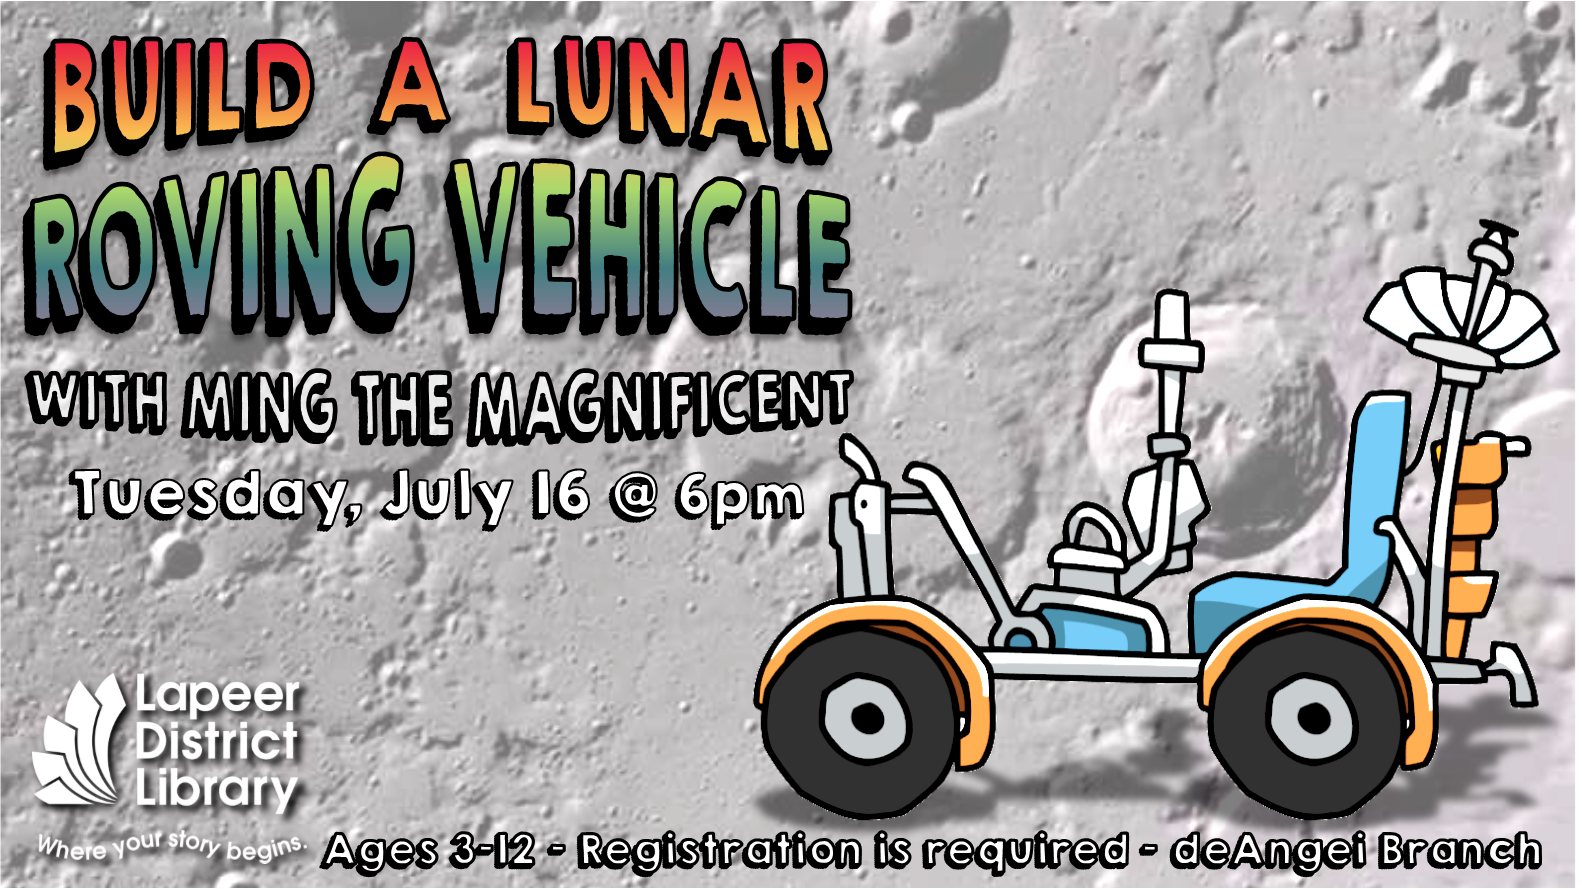 Build a Lunar Roving Vehicle with Ming the Magnificent